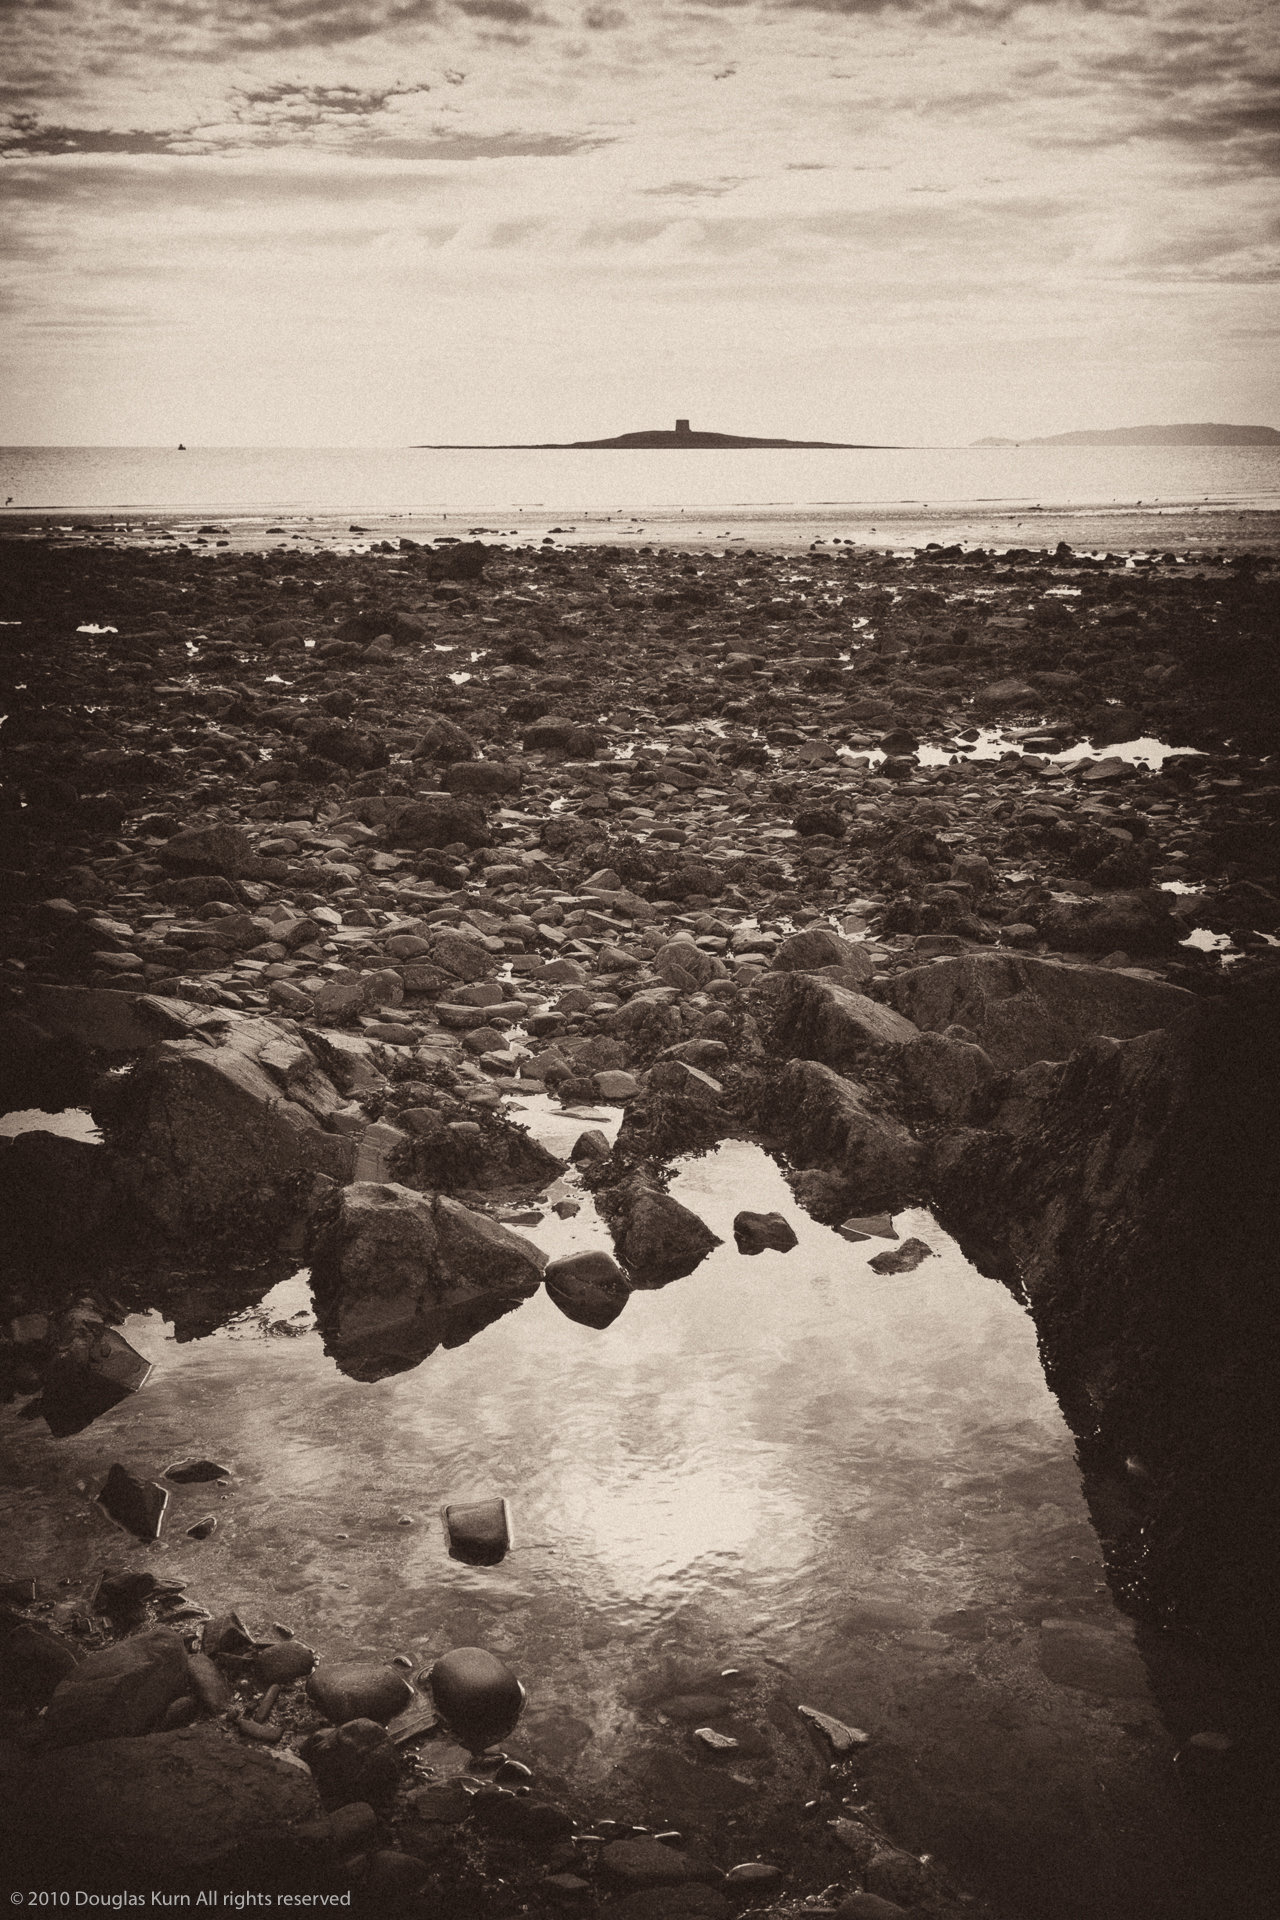 Shenick Island, Skerries